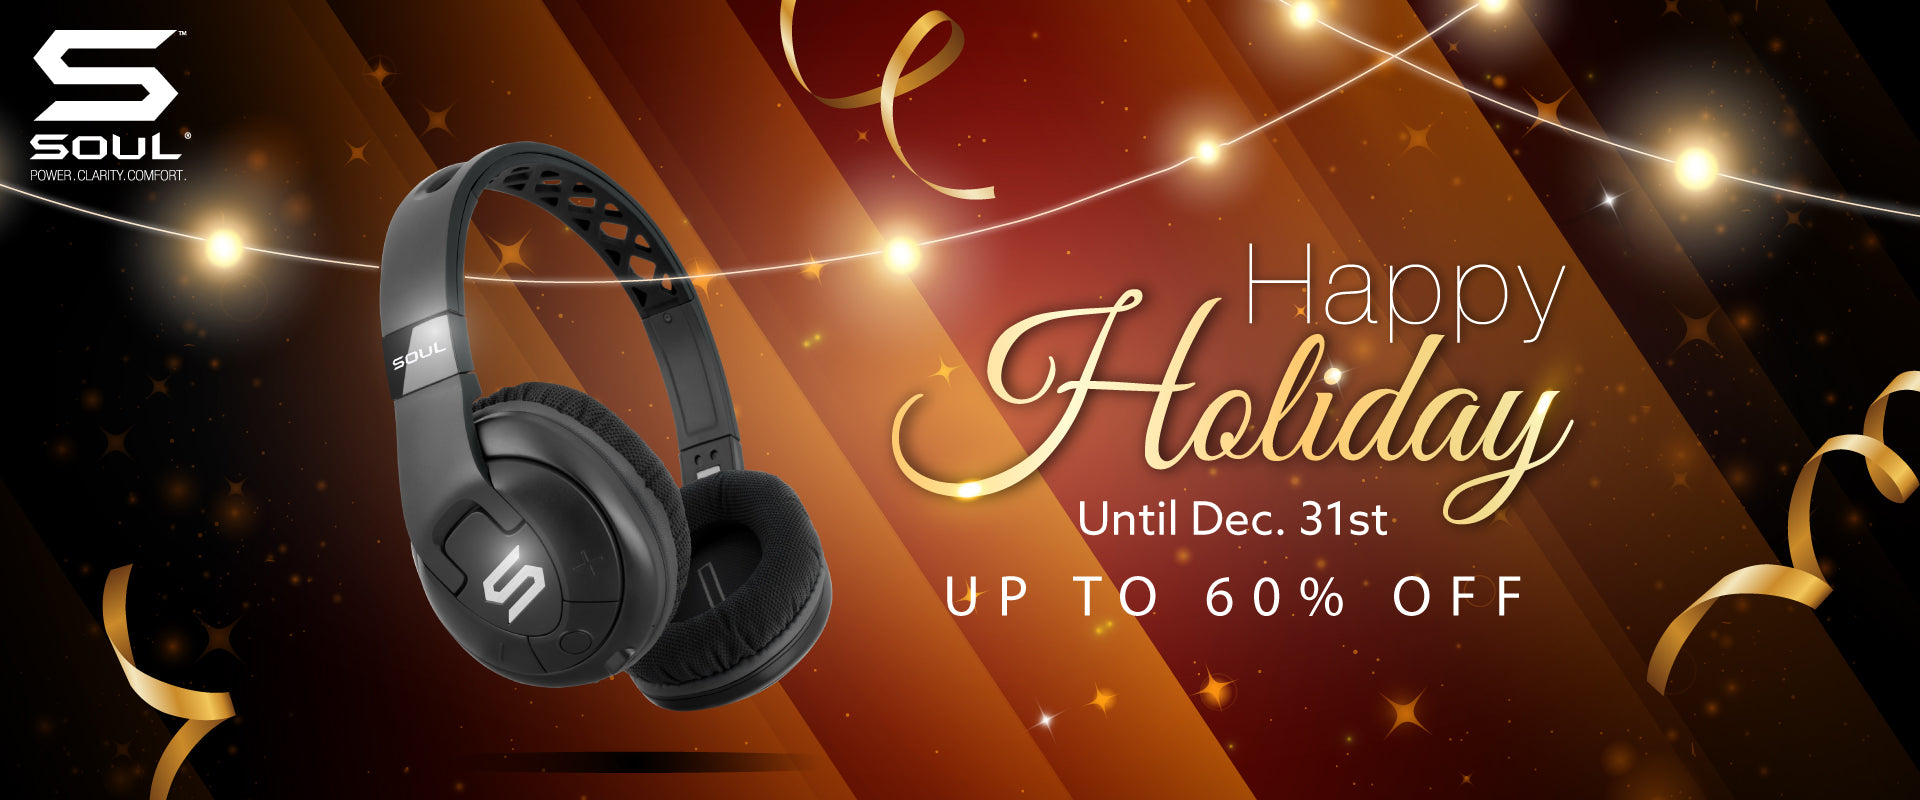 December 1212 Sale Discount | Wireless Earbuds | SOUL Electronics